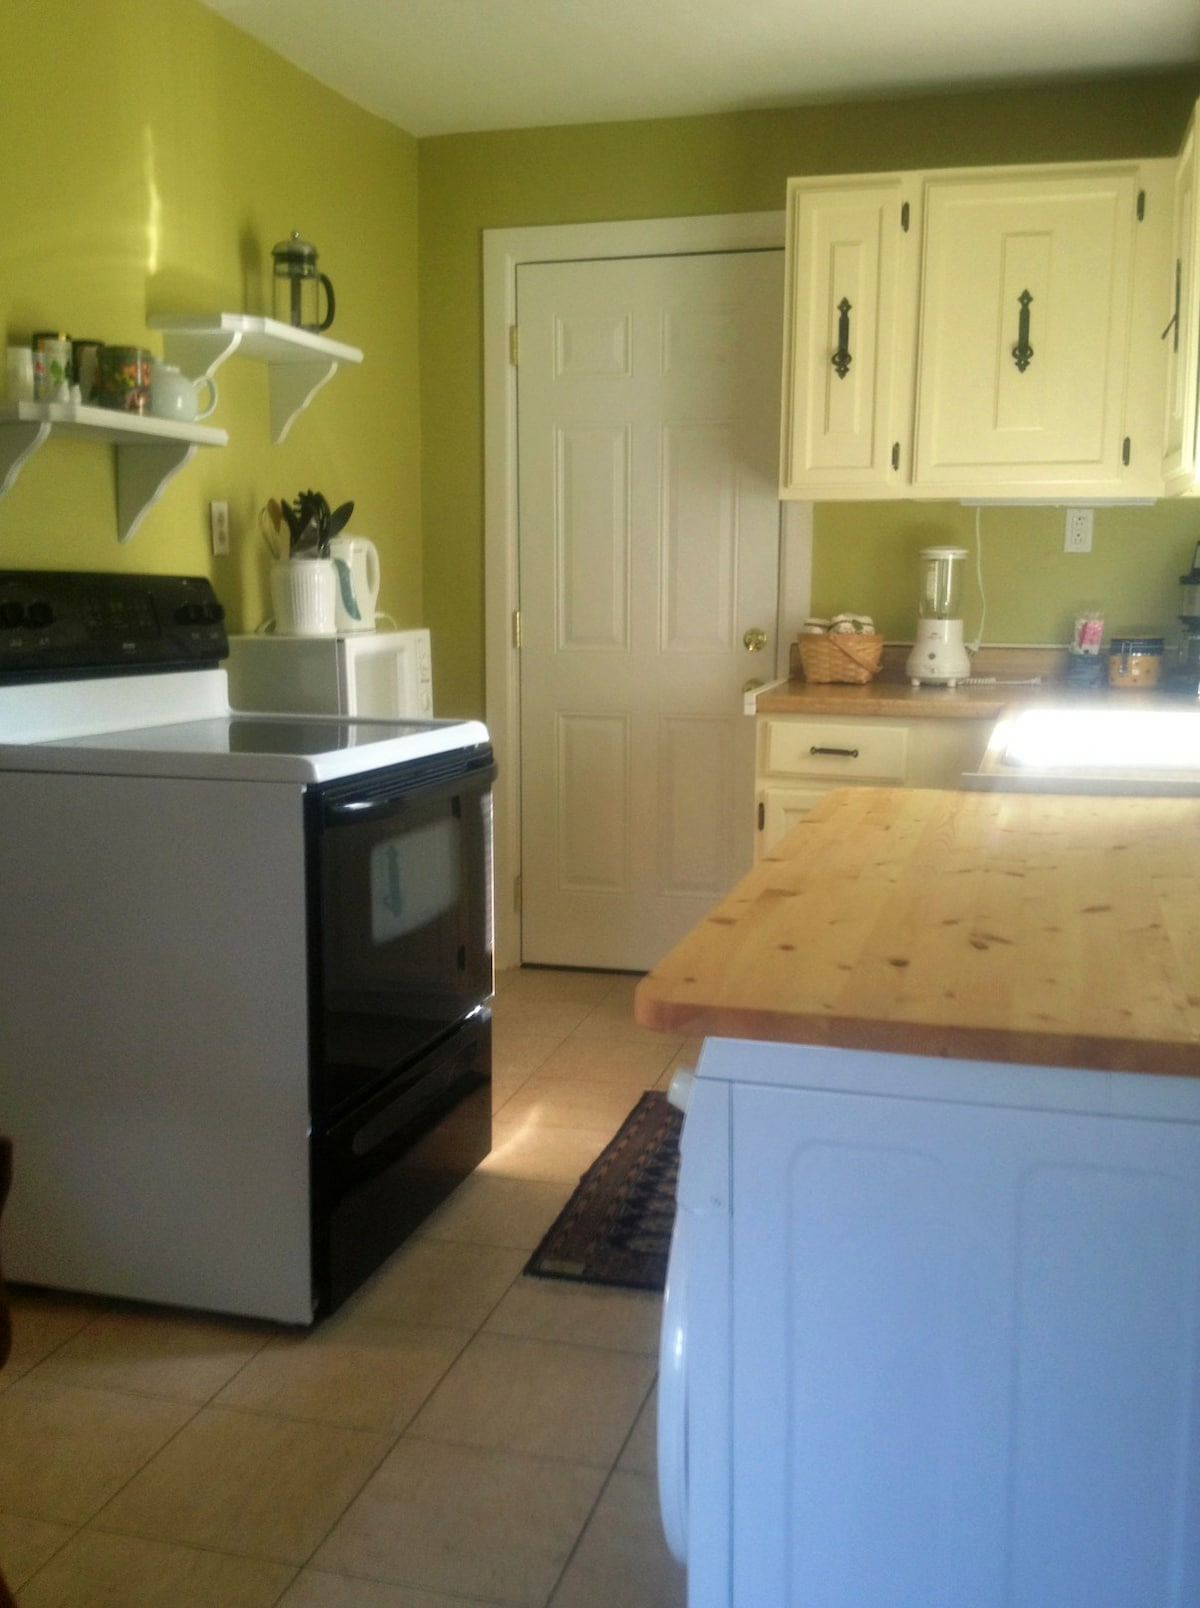 Fully Equipped Kitchen with Everything You Need to Feel Right at Home